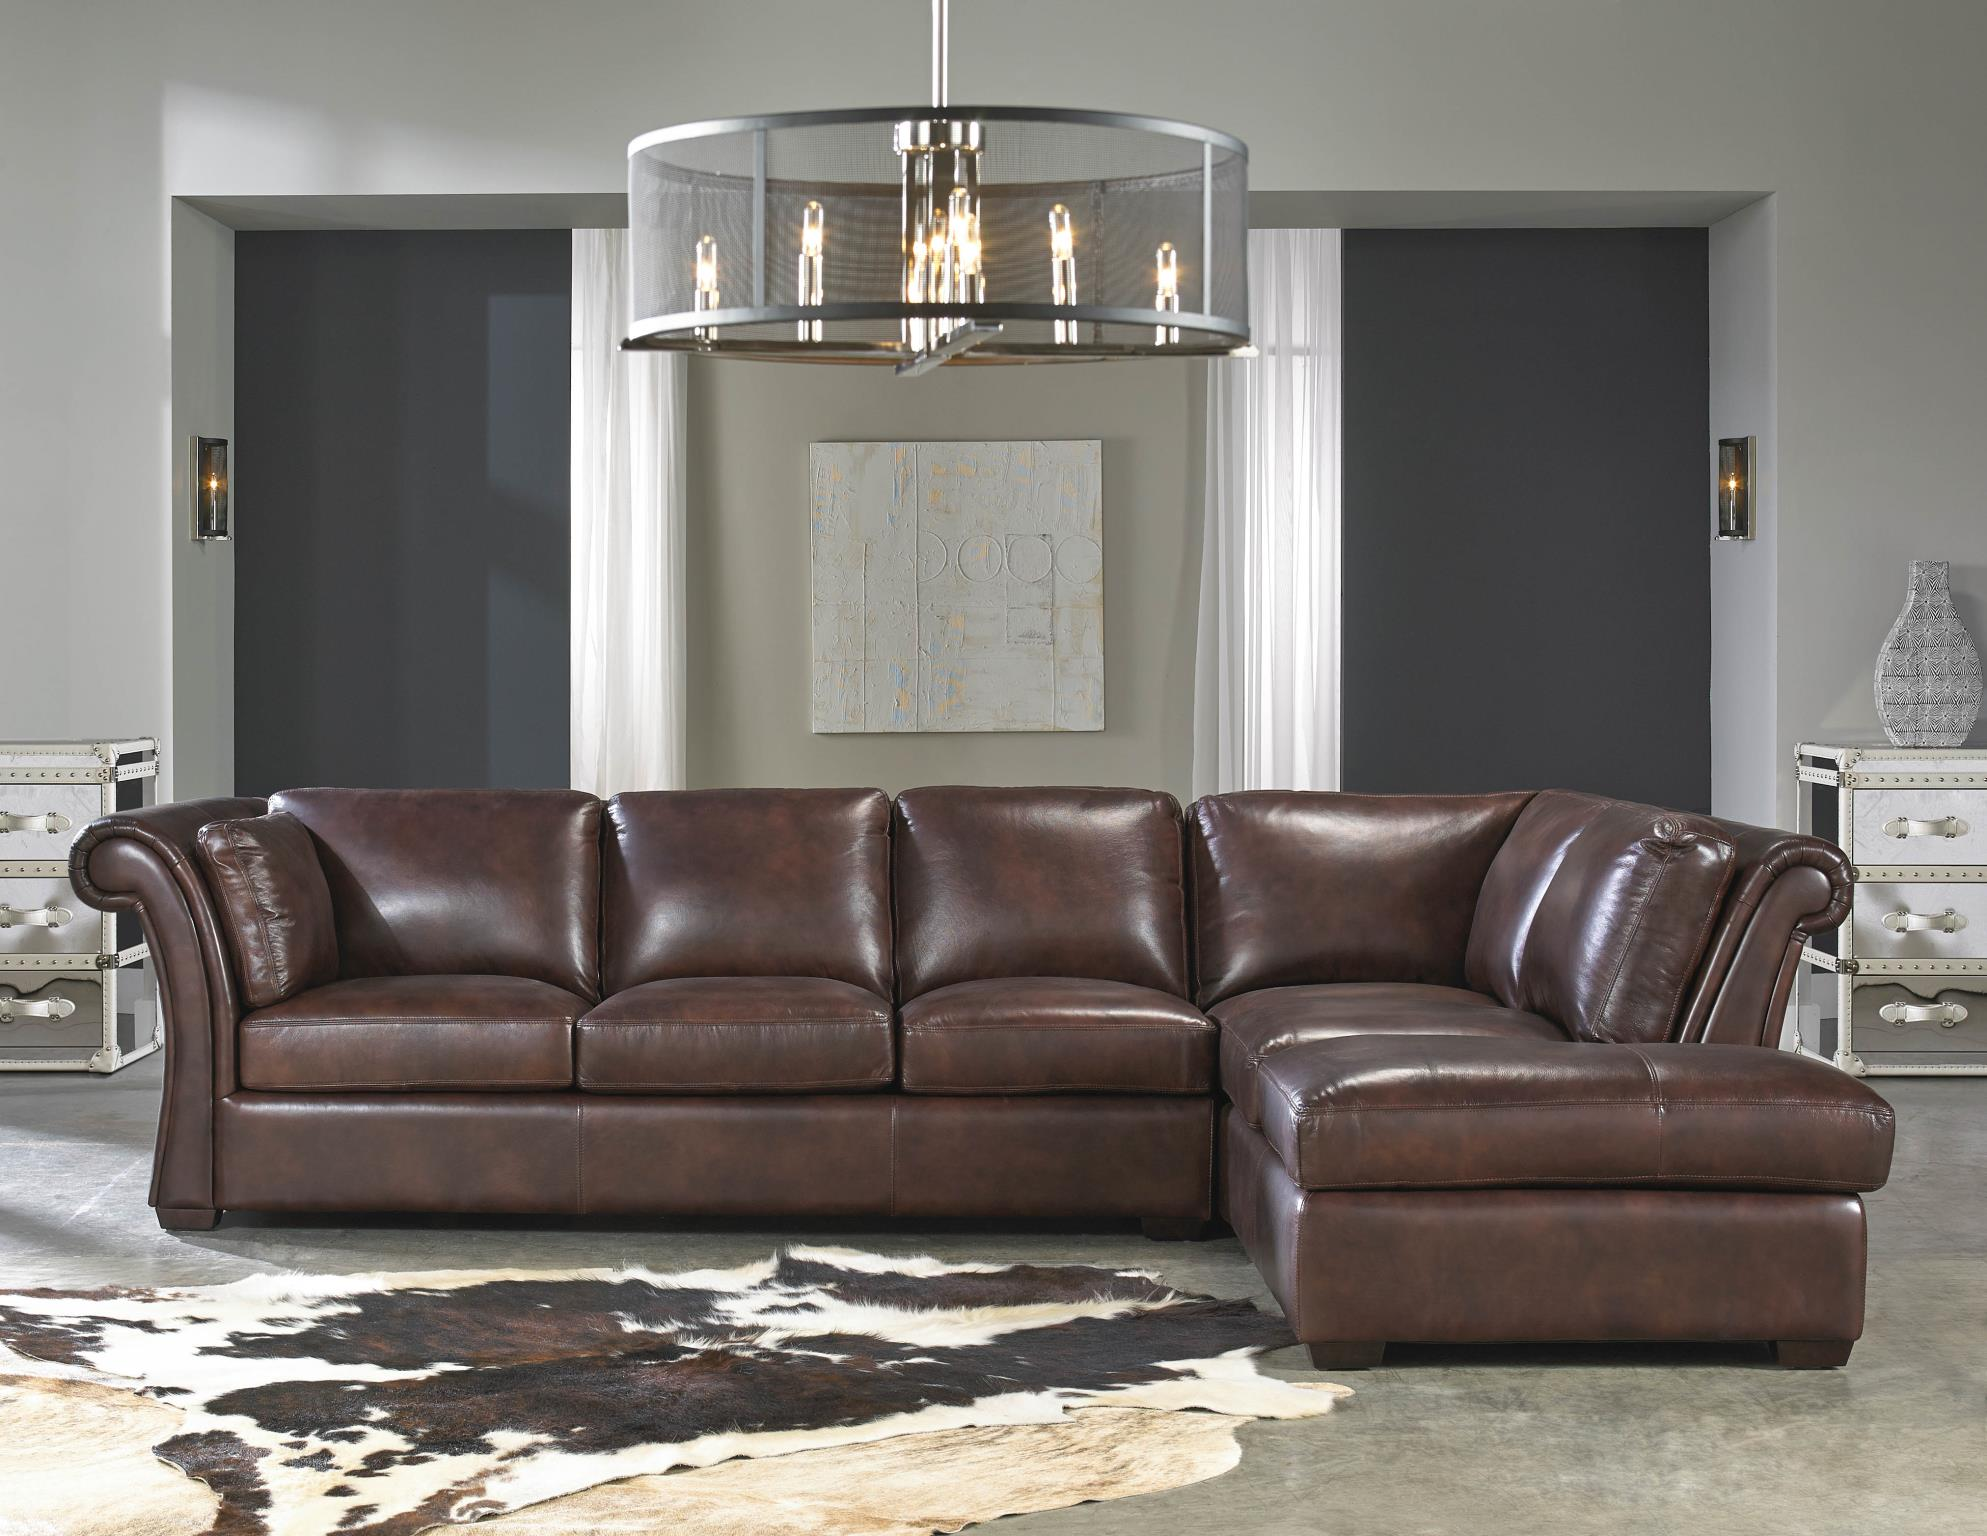 Delightful Angelina 1437 RSF Chaise Leather Sectional